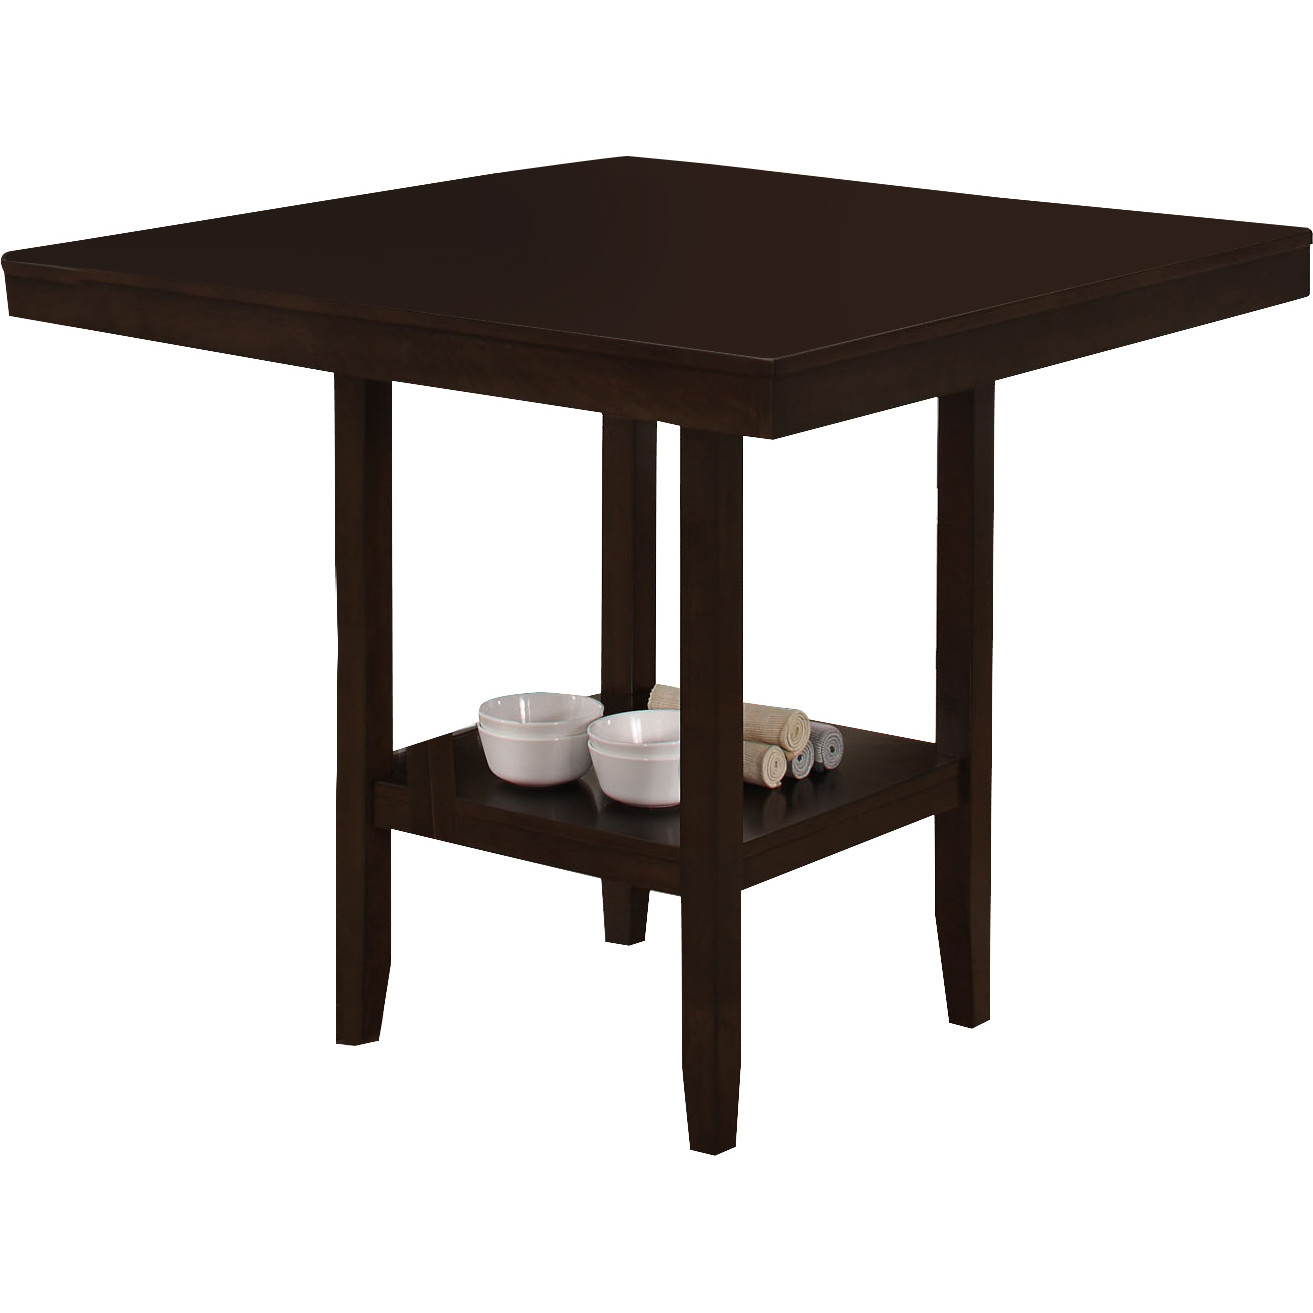 Best ideas about Dining Table Height . Save or Pin Monarch Specialties Inc Counter Height Dining Table Now.